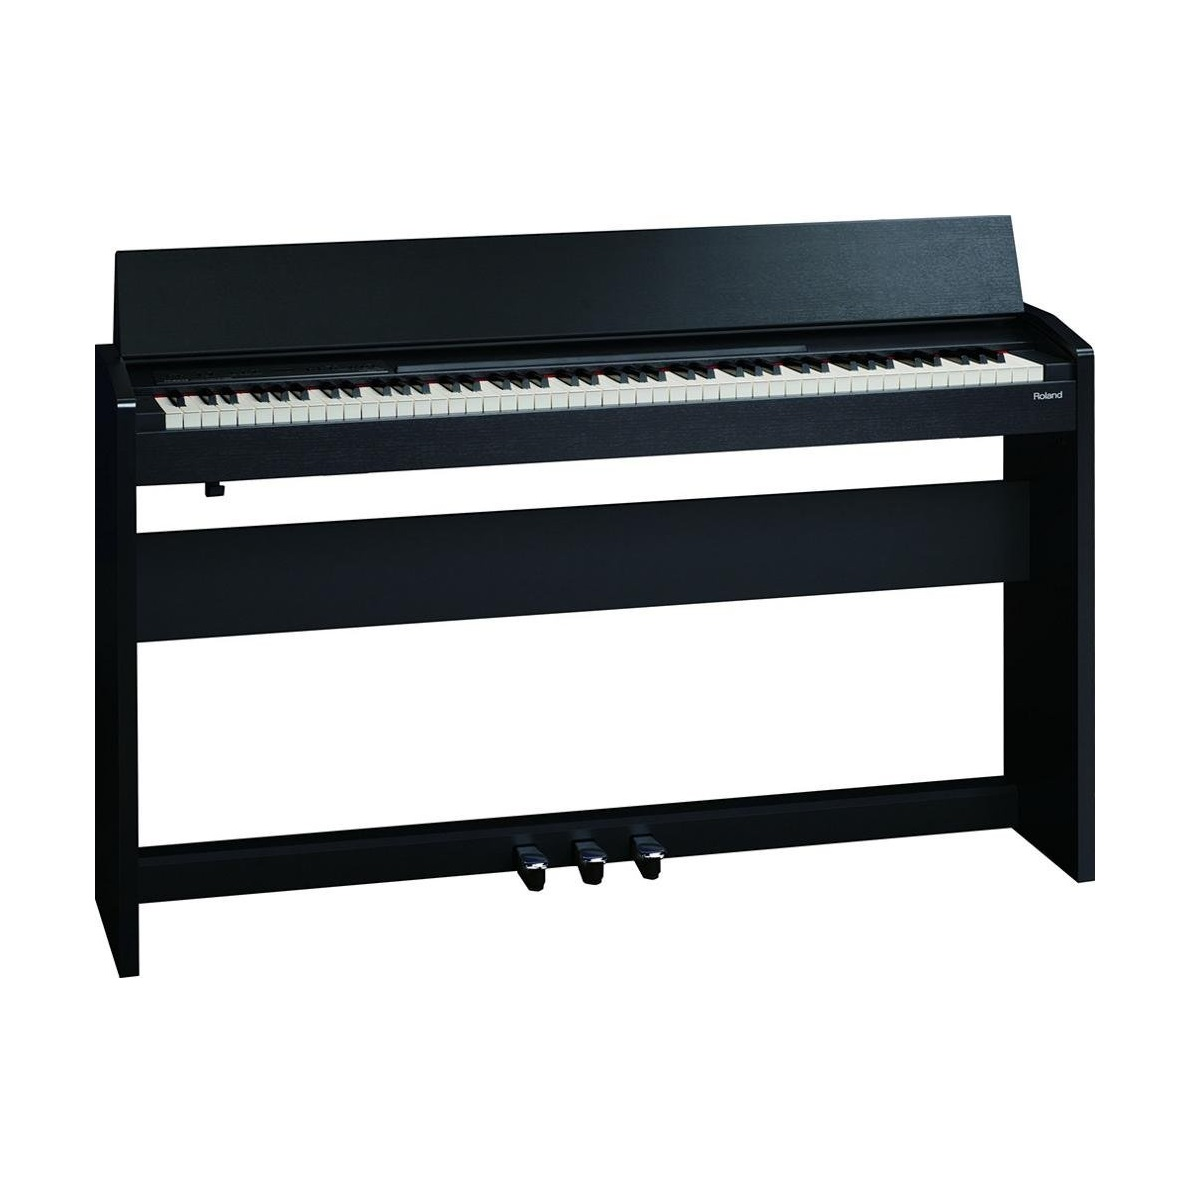 roland f 130 digital piano review best digital piano. Black Bedroom Furniture Sets. Home Design Ideas